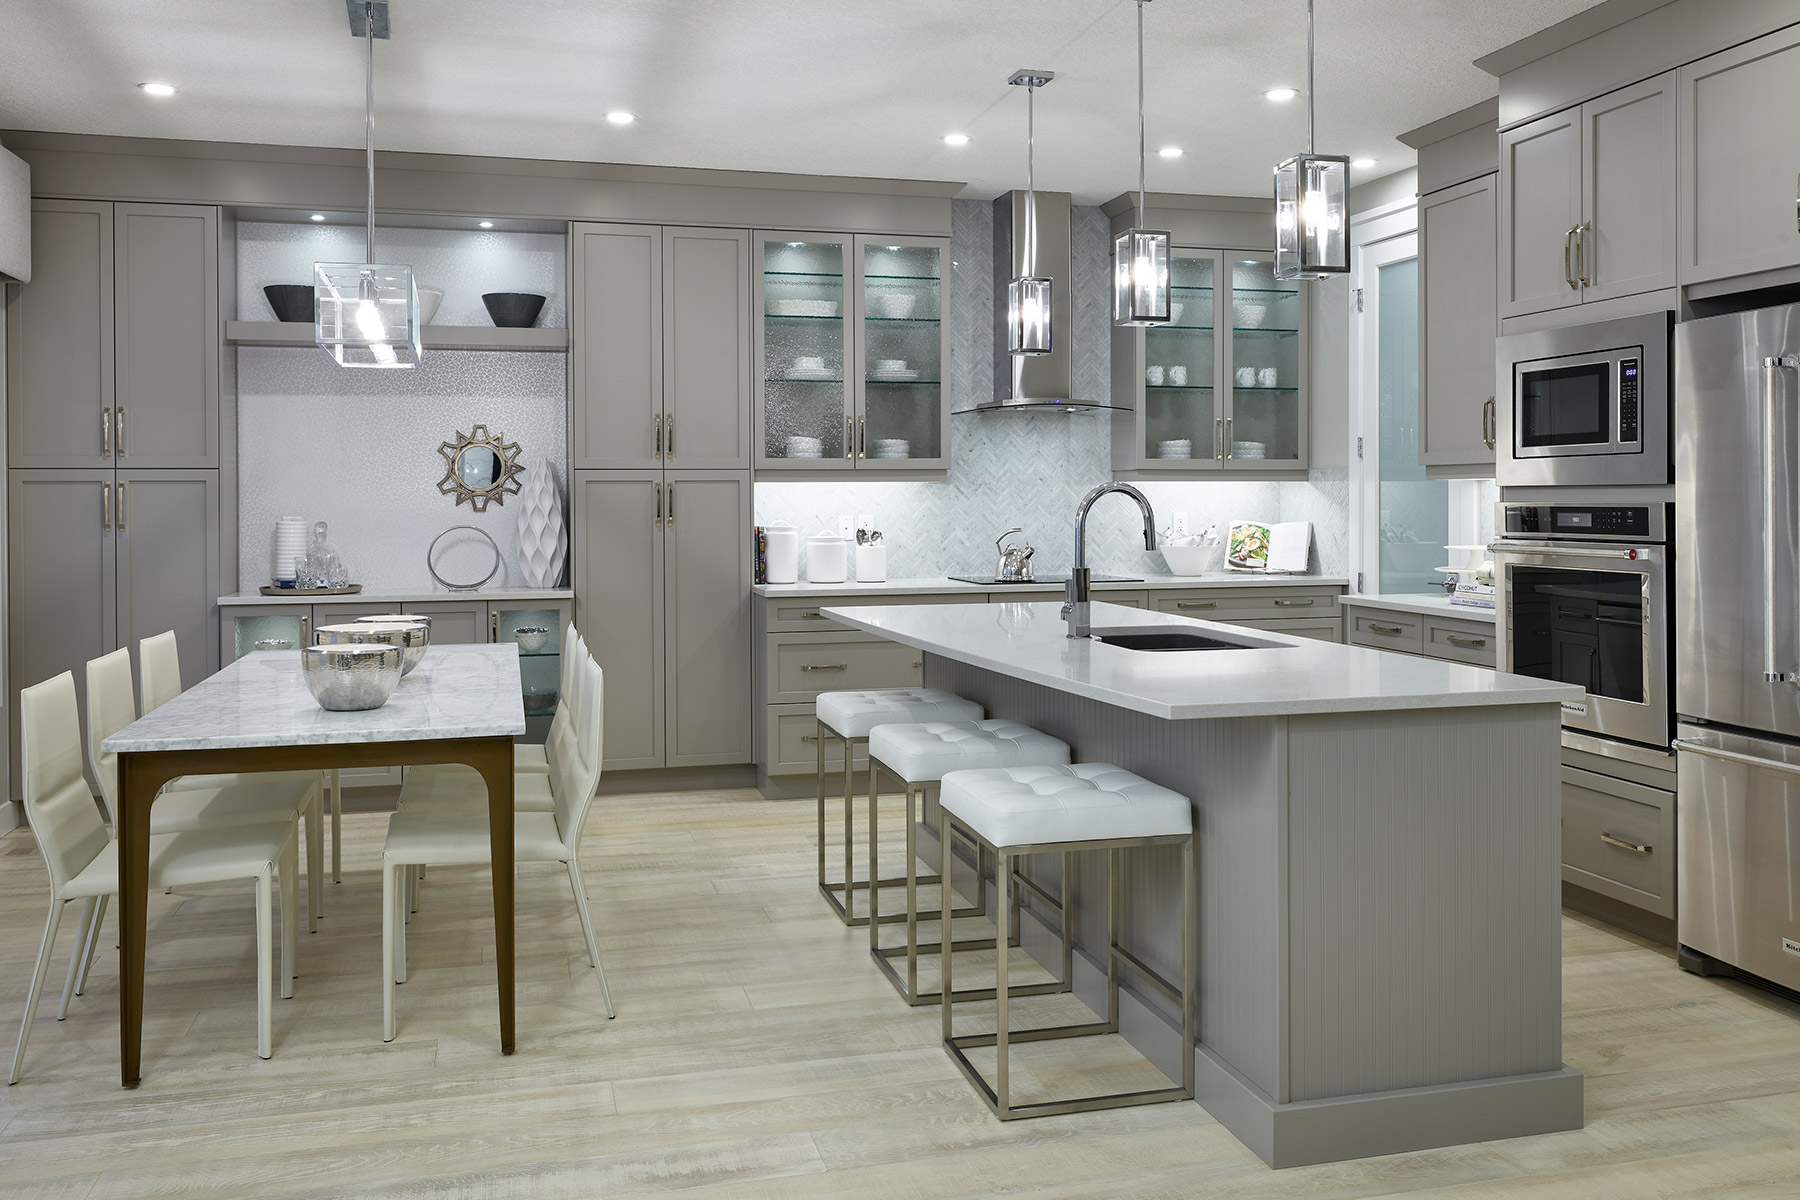 Riedel Plan Kitchen at Cityscape in Calgary Alberta by Mattamy Homes